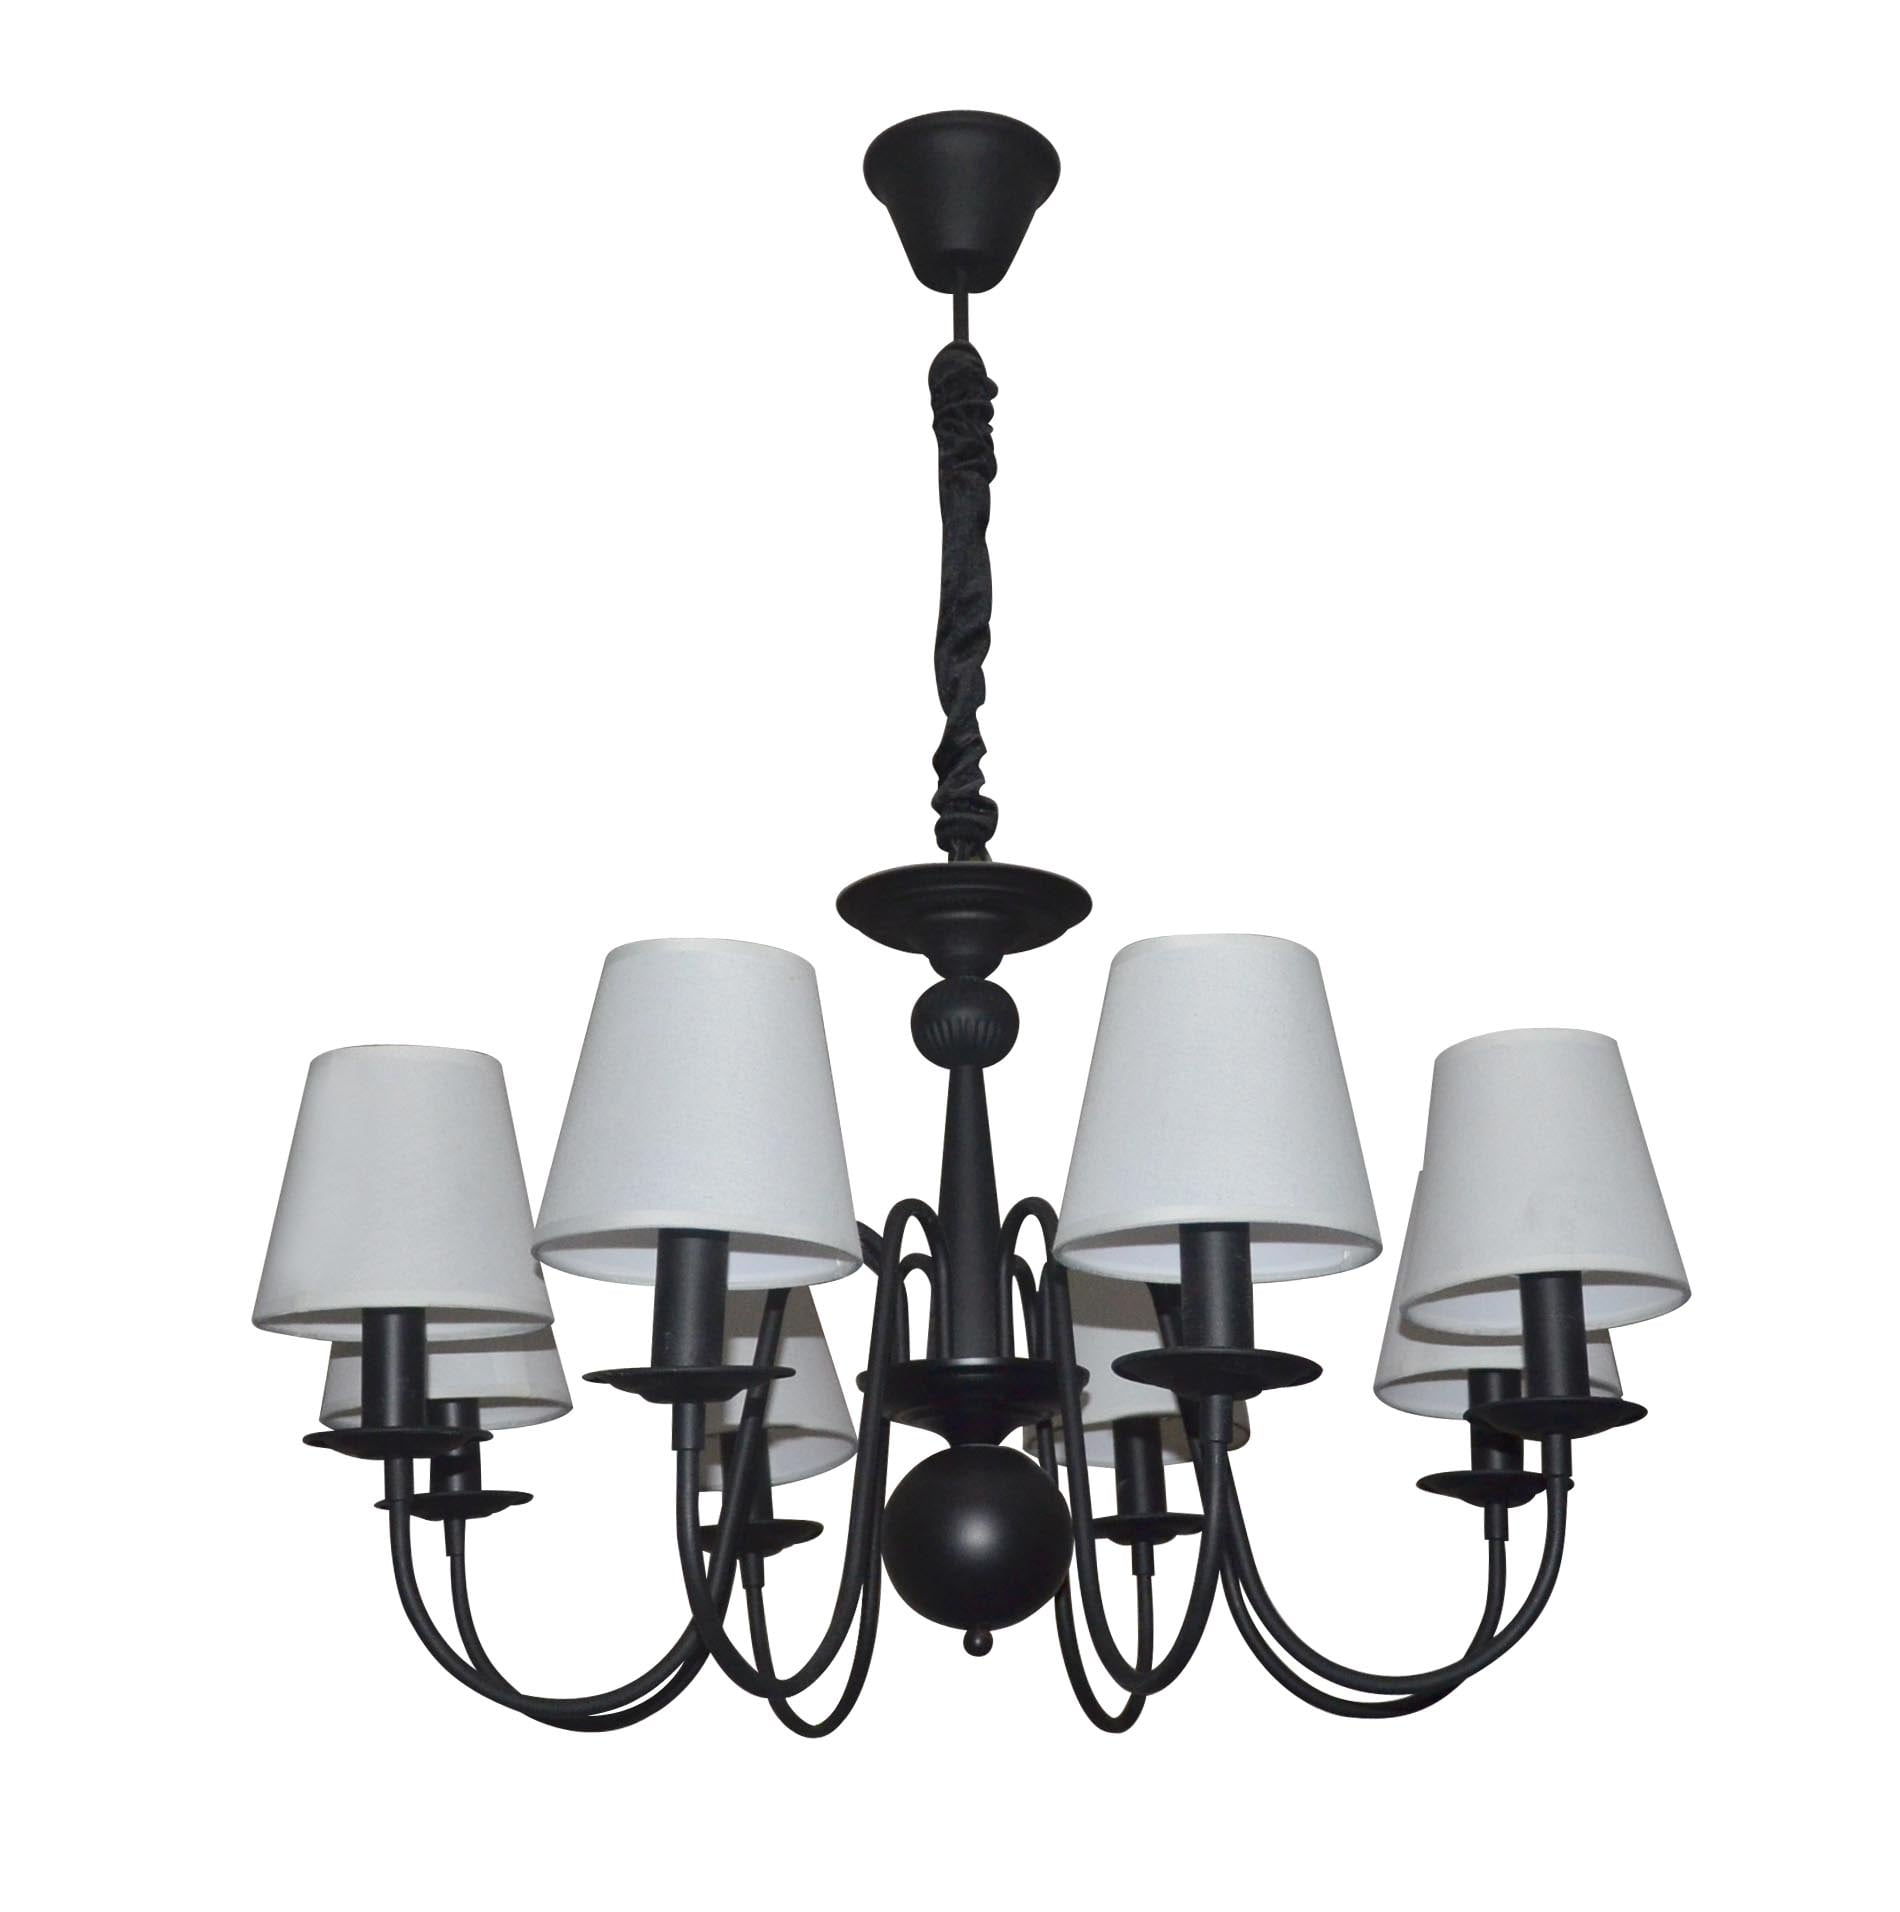 Black chandelier Verona with 8 white lampshades